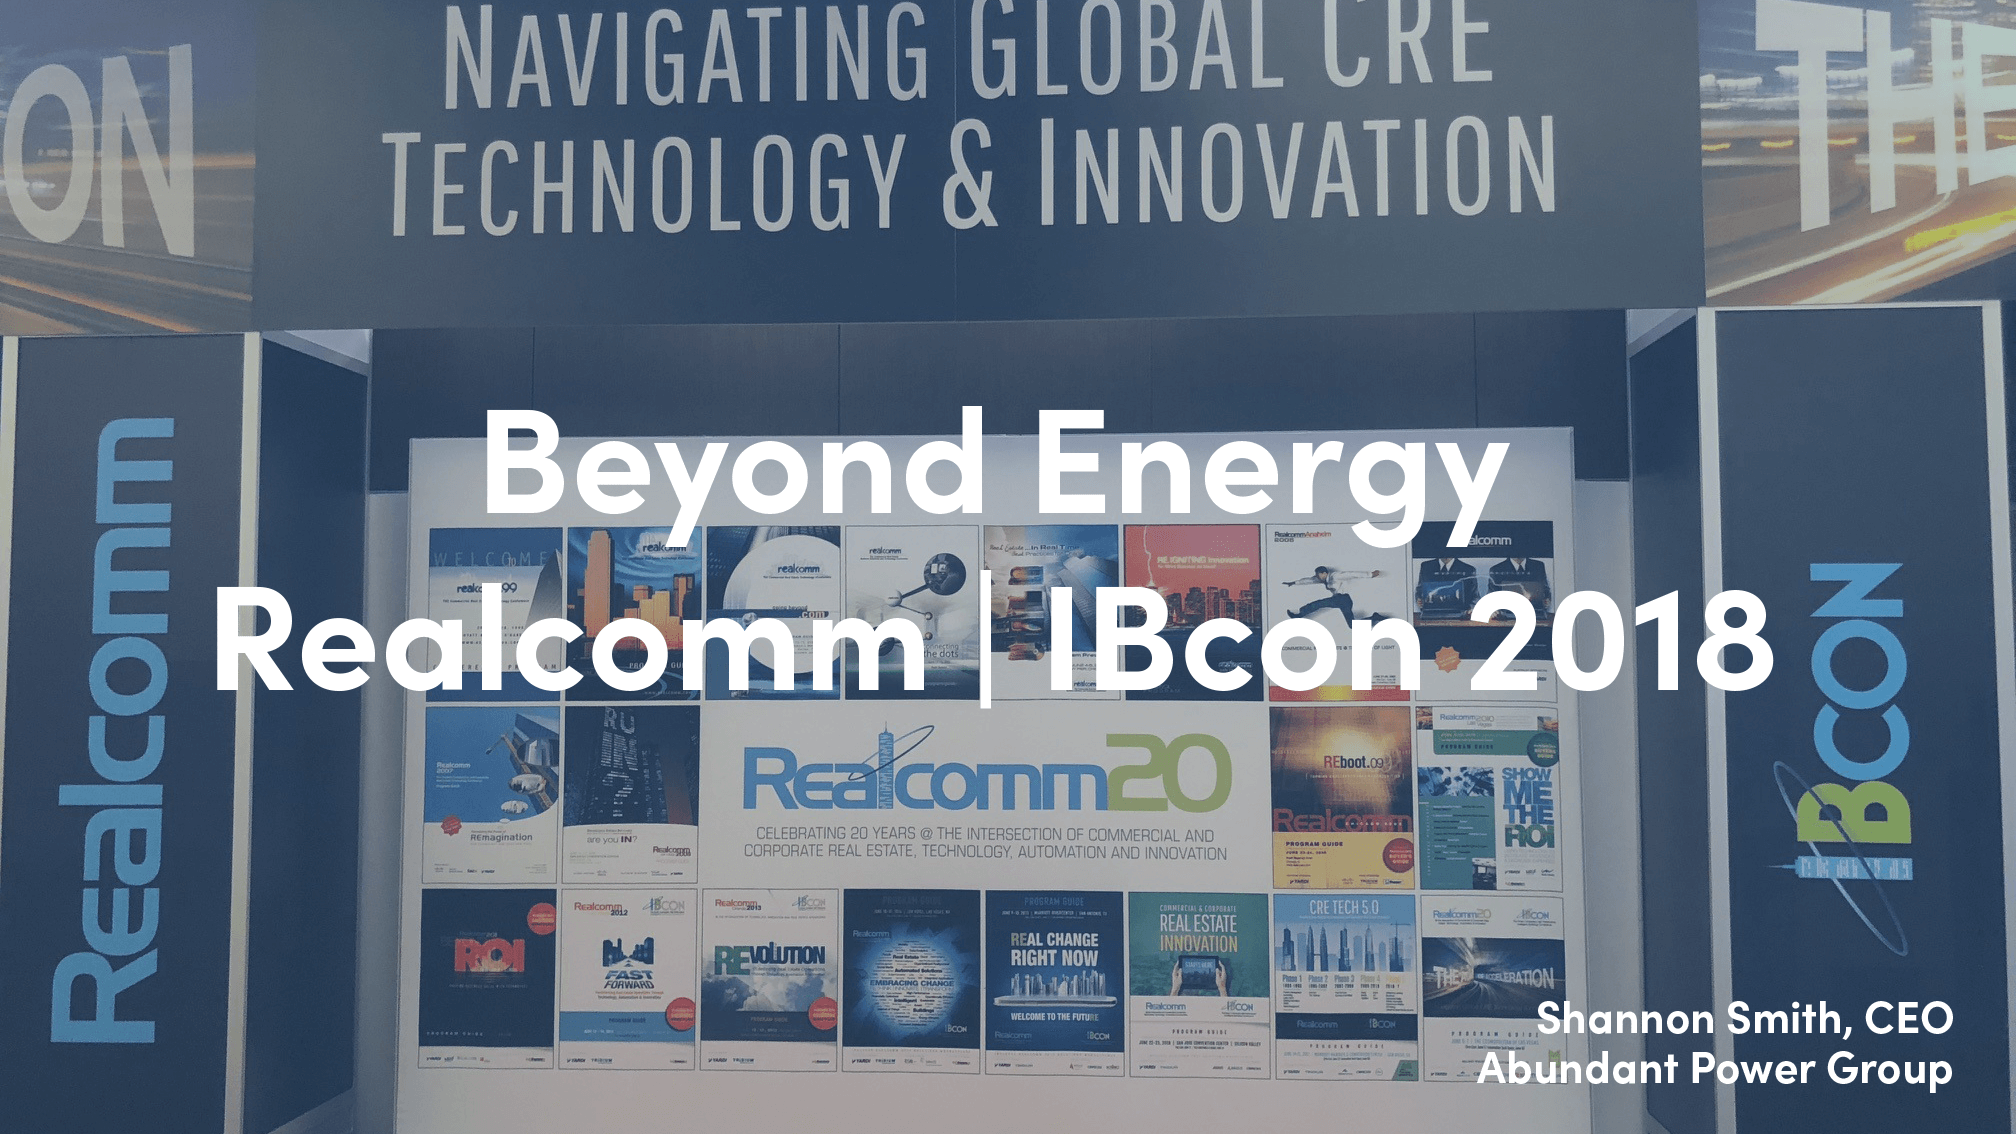 Realcomm | IBcon 2018 - Beyond Energy